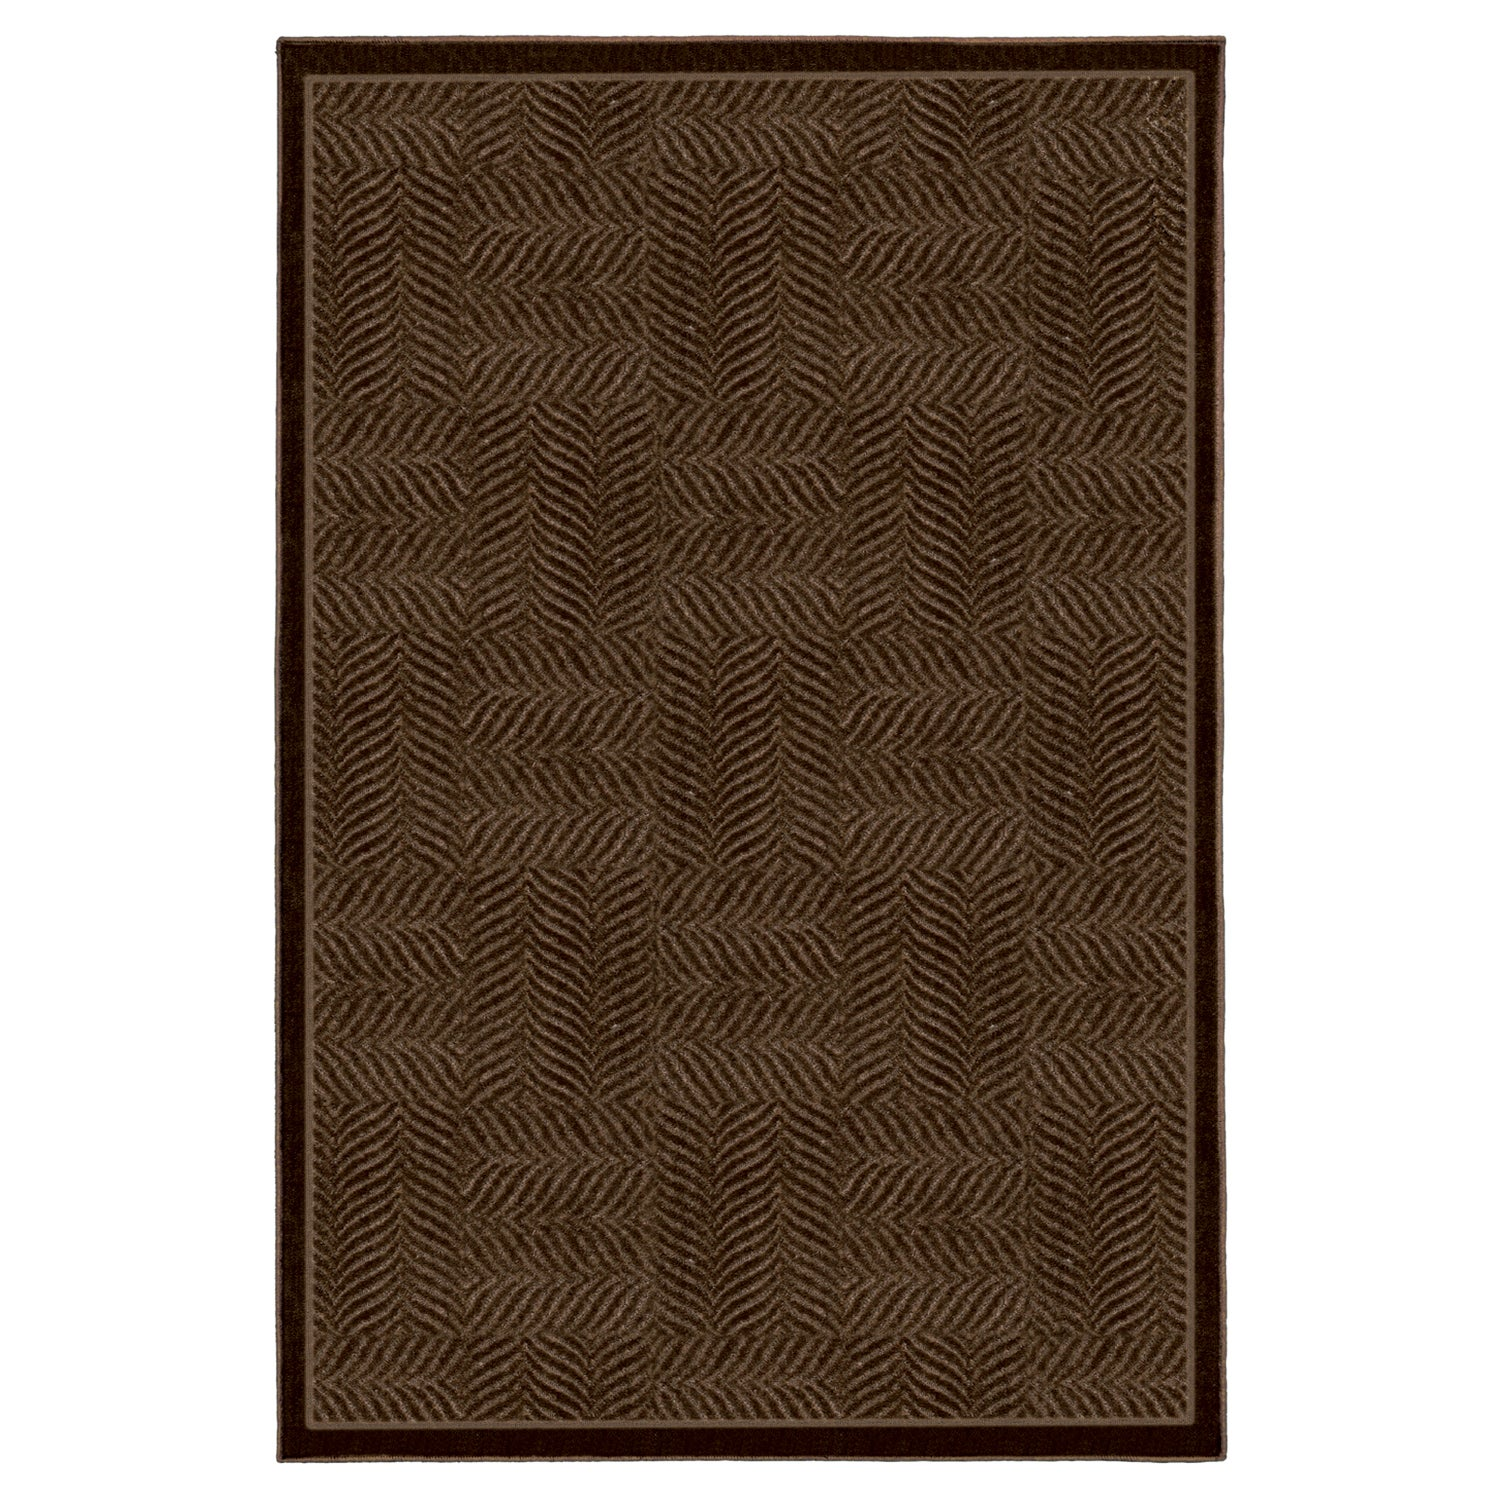 Tiger Patch Mink Brown Rug (8' x 10') - Thumbnail 0